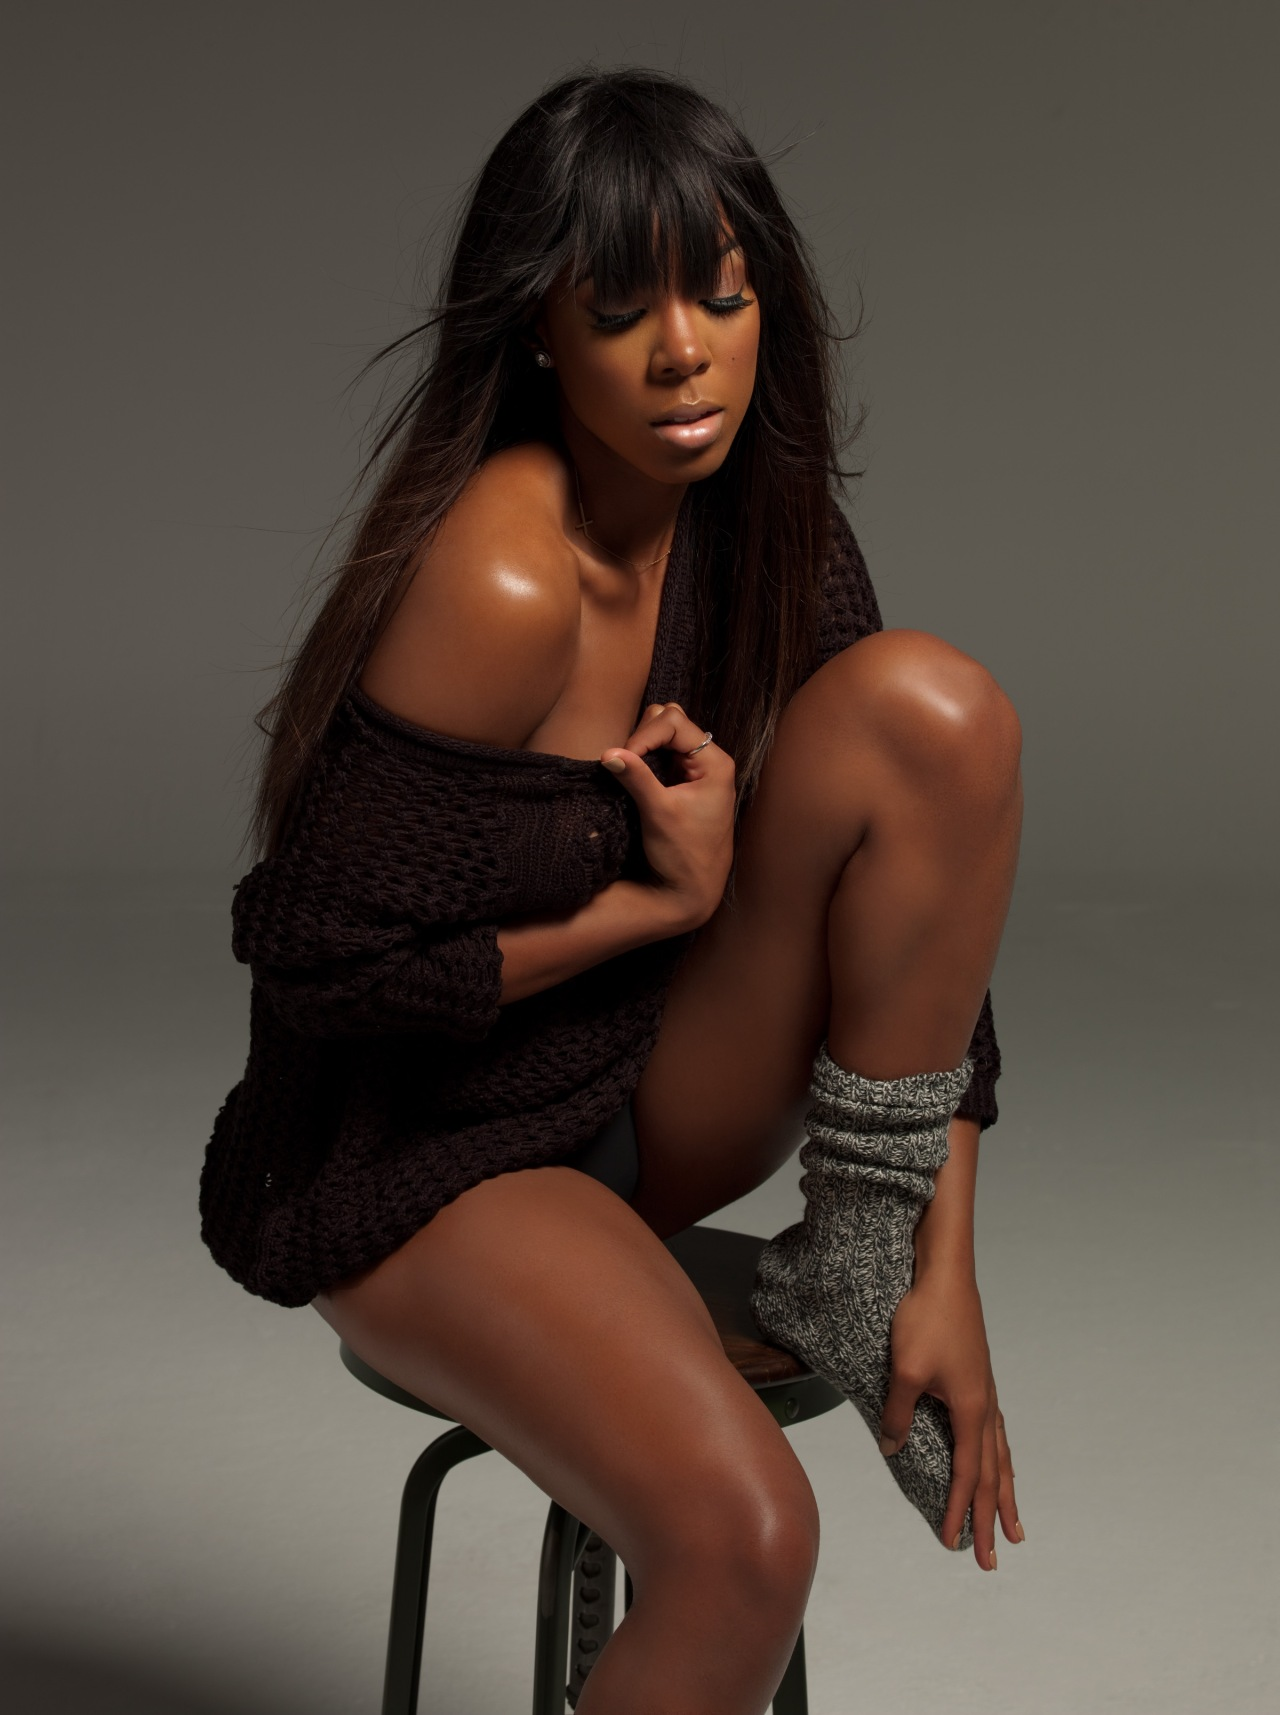 The Uncalculated Rise of Kelly Rowland